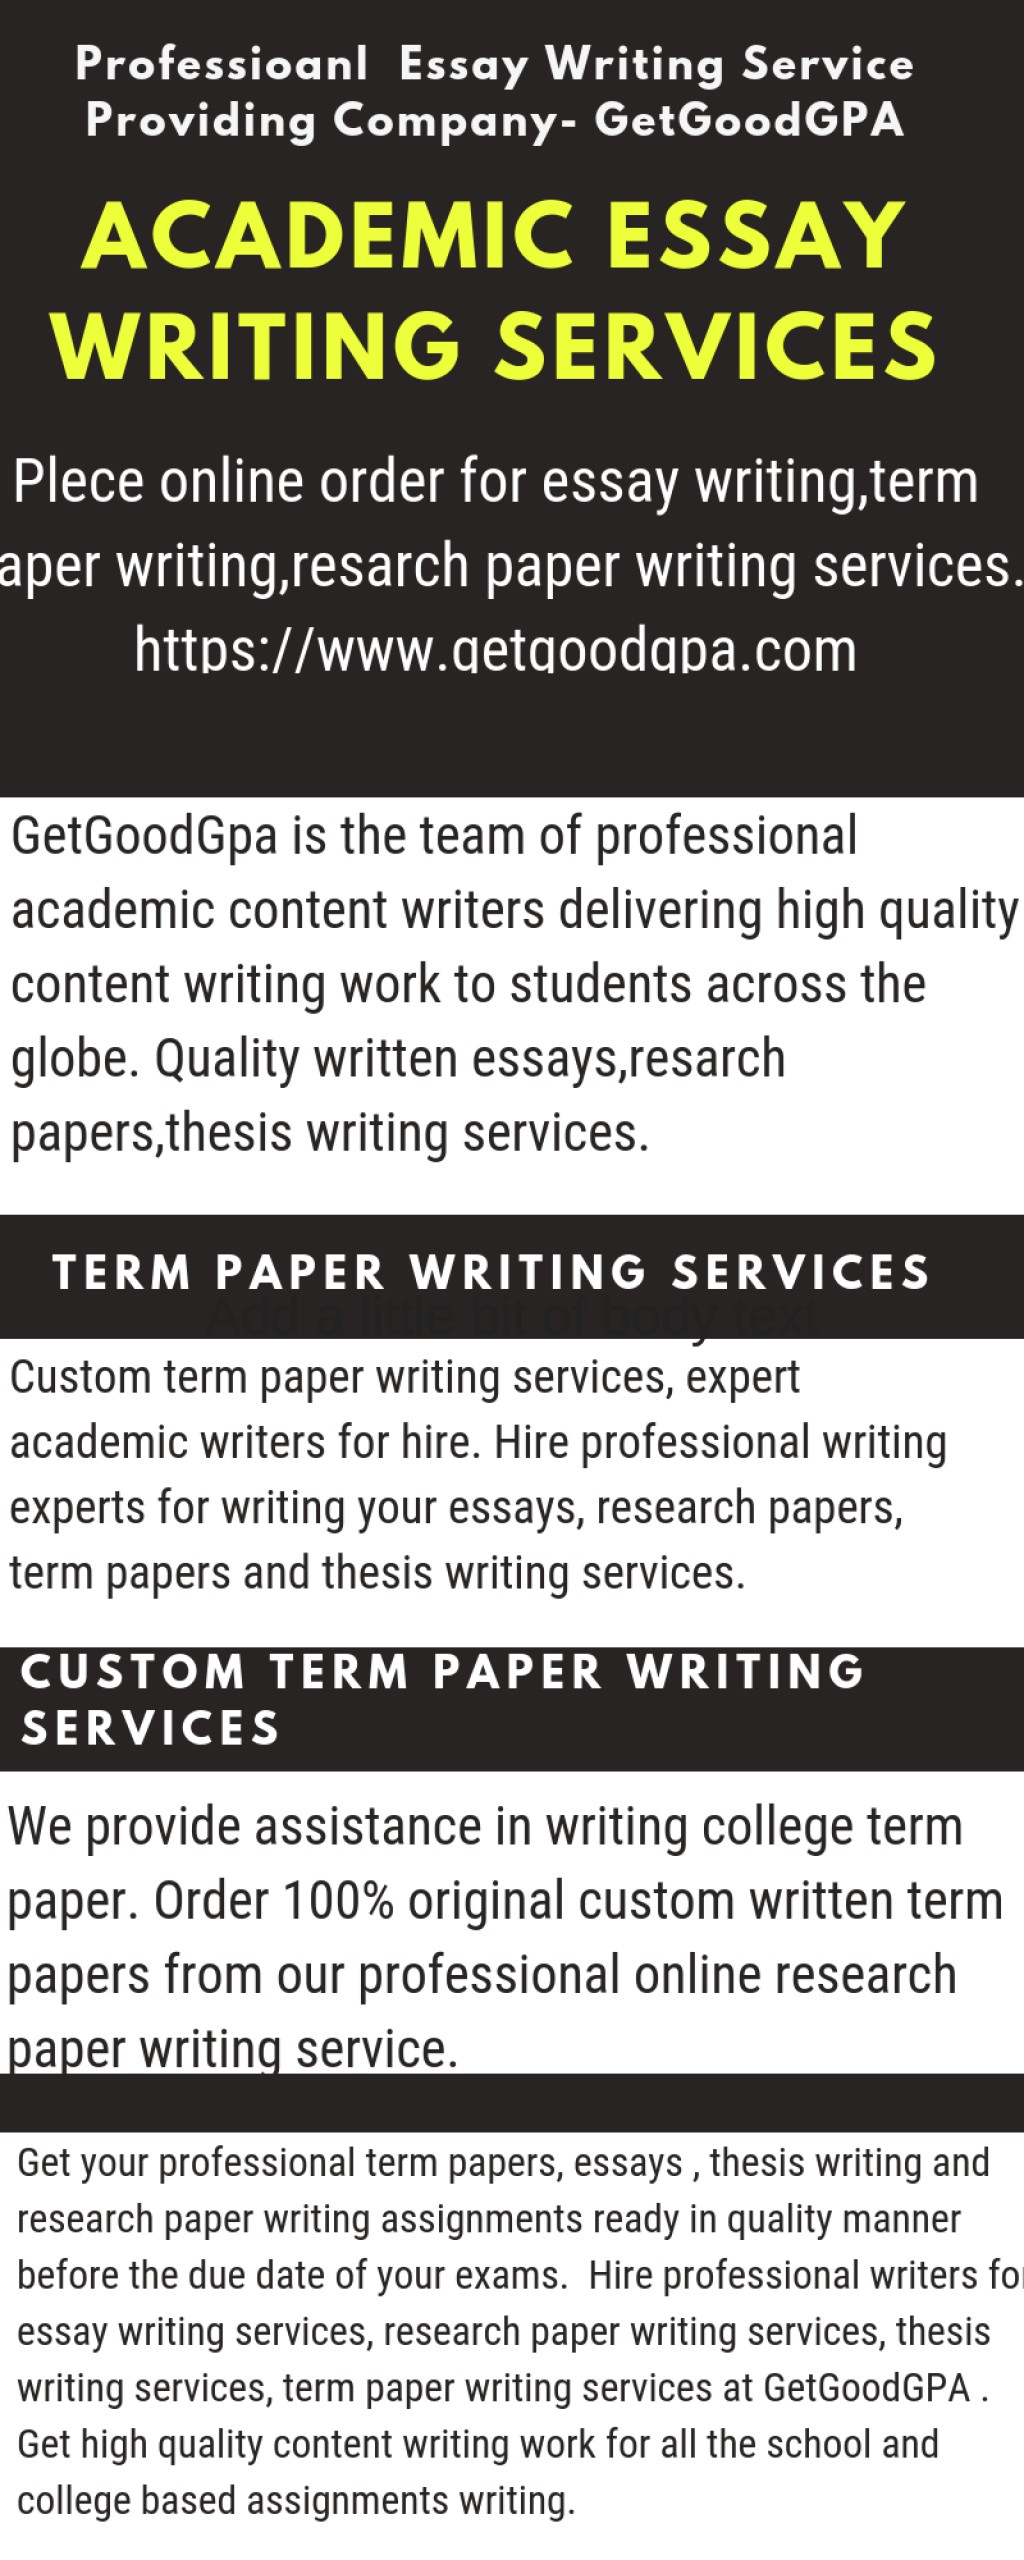 015 Research Paper Custom Striking Writers Writing Service Services Term Writer Large